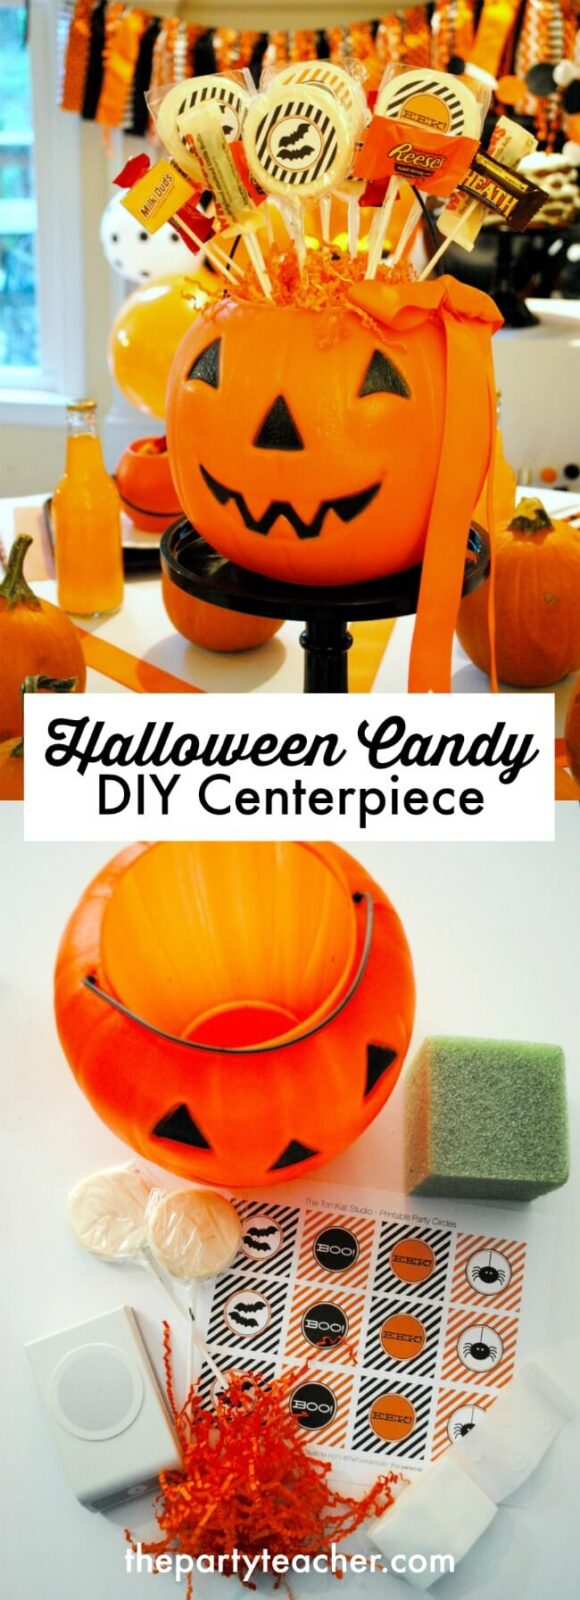 How to make a Halloween candy centerpiece by The Party Teacher